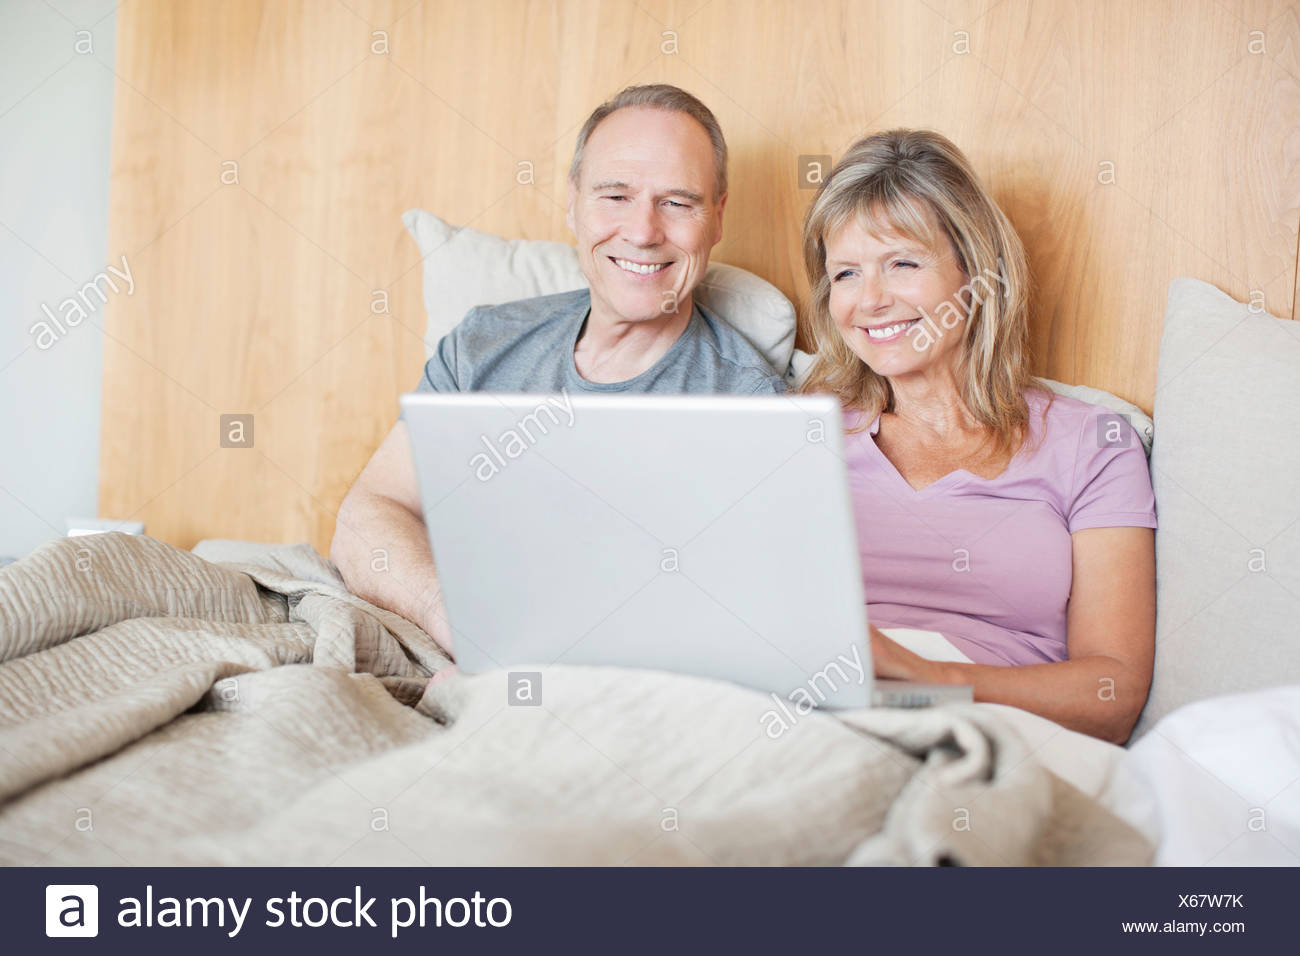 Couple sitting in bed using laptop together - Stock Image